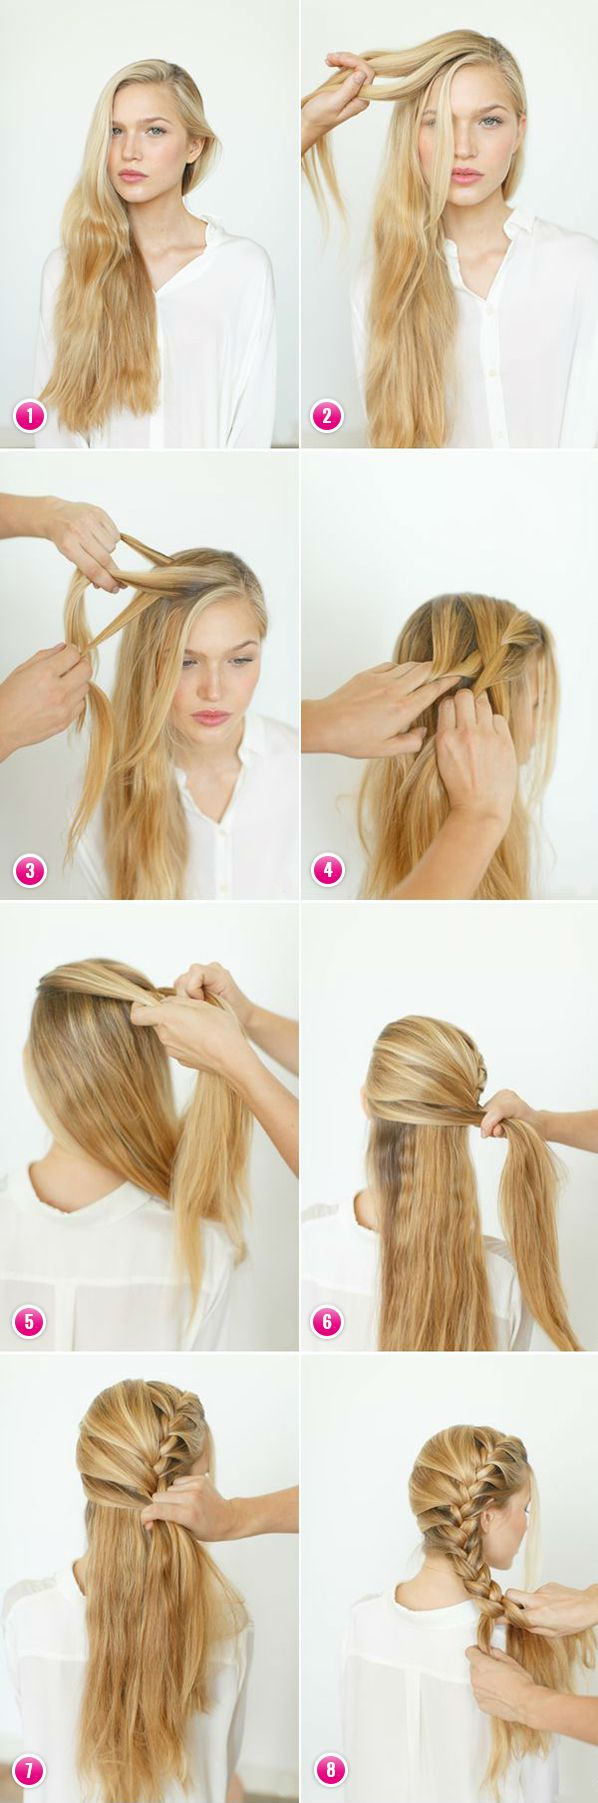 Permalink to Different Braid Hairstyles And How To Do Them